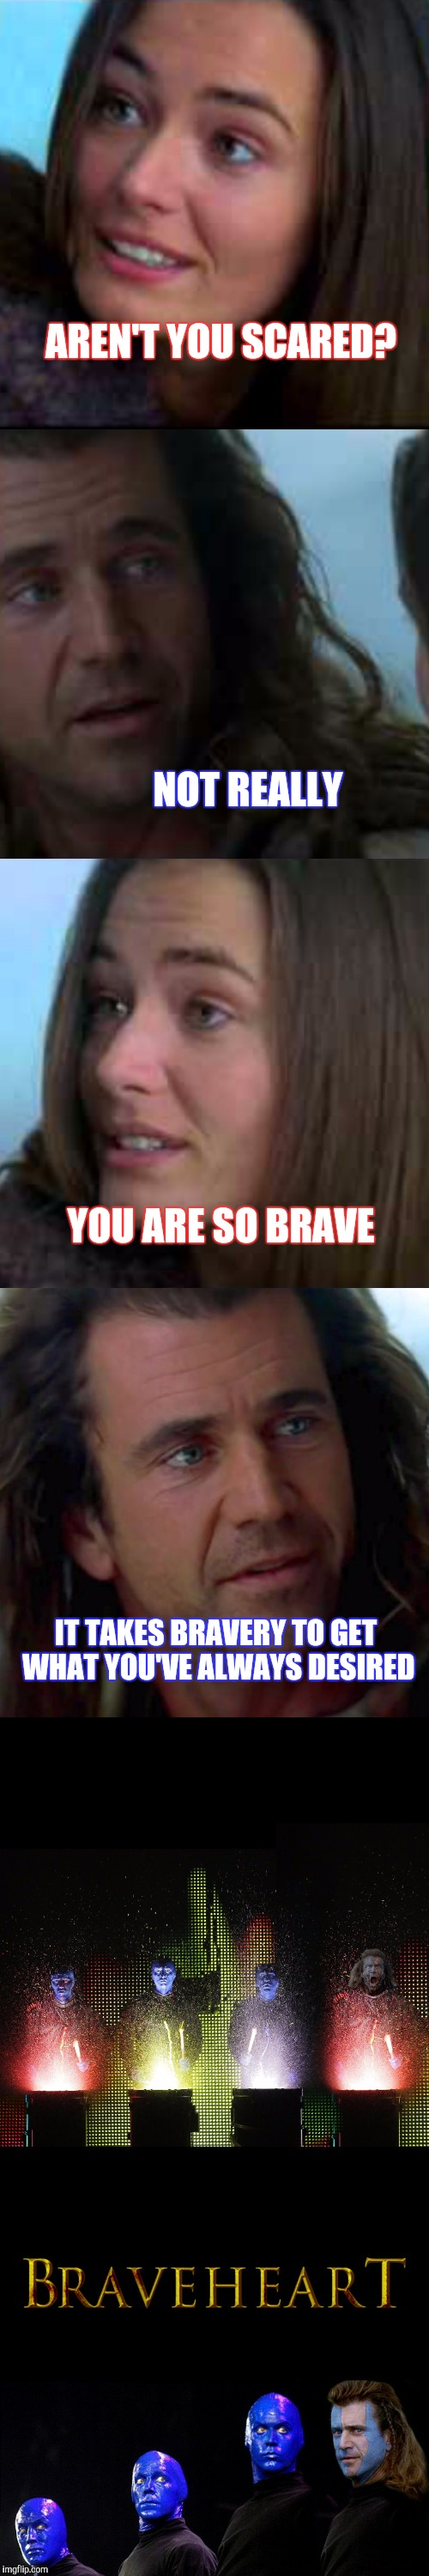 IF YOU CAN DREAM IT, YOU CAN DO IT | AREN'T YOU SCARED? IT TAKES BRAVERY TO GET WHAT YOU'VE ALWAYS DESIRED NOT REALLY YOU ARE SO BRAVE | image tagged in braveheart,blue man,funny,movies | made w/ Imgflip meme maker